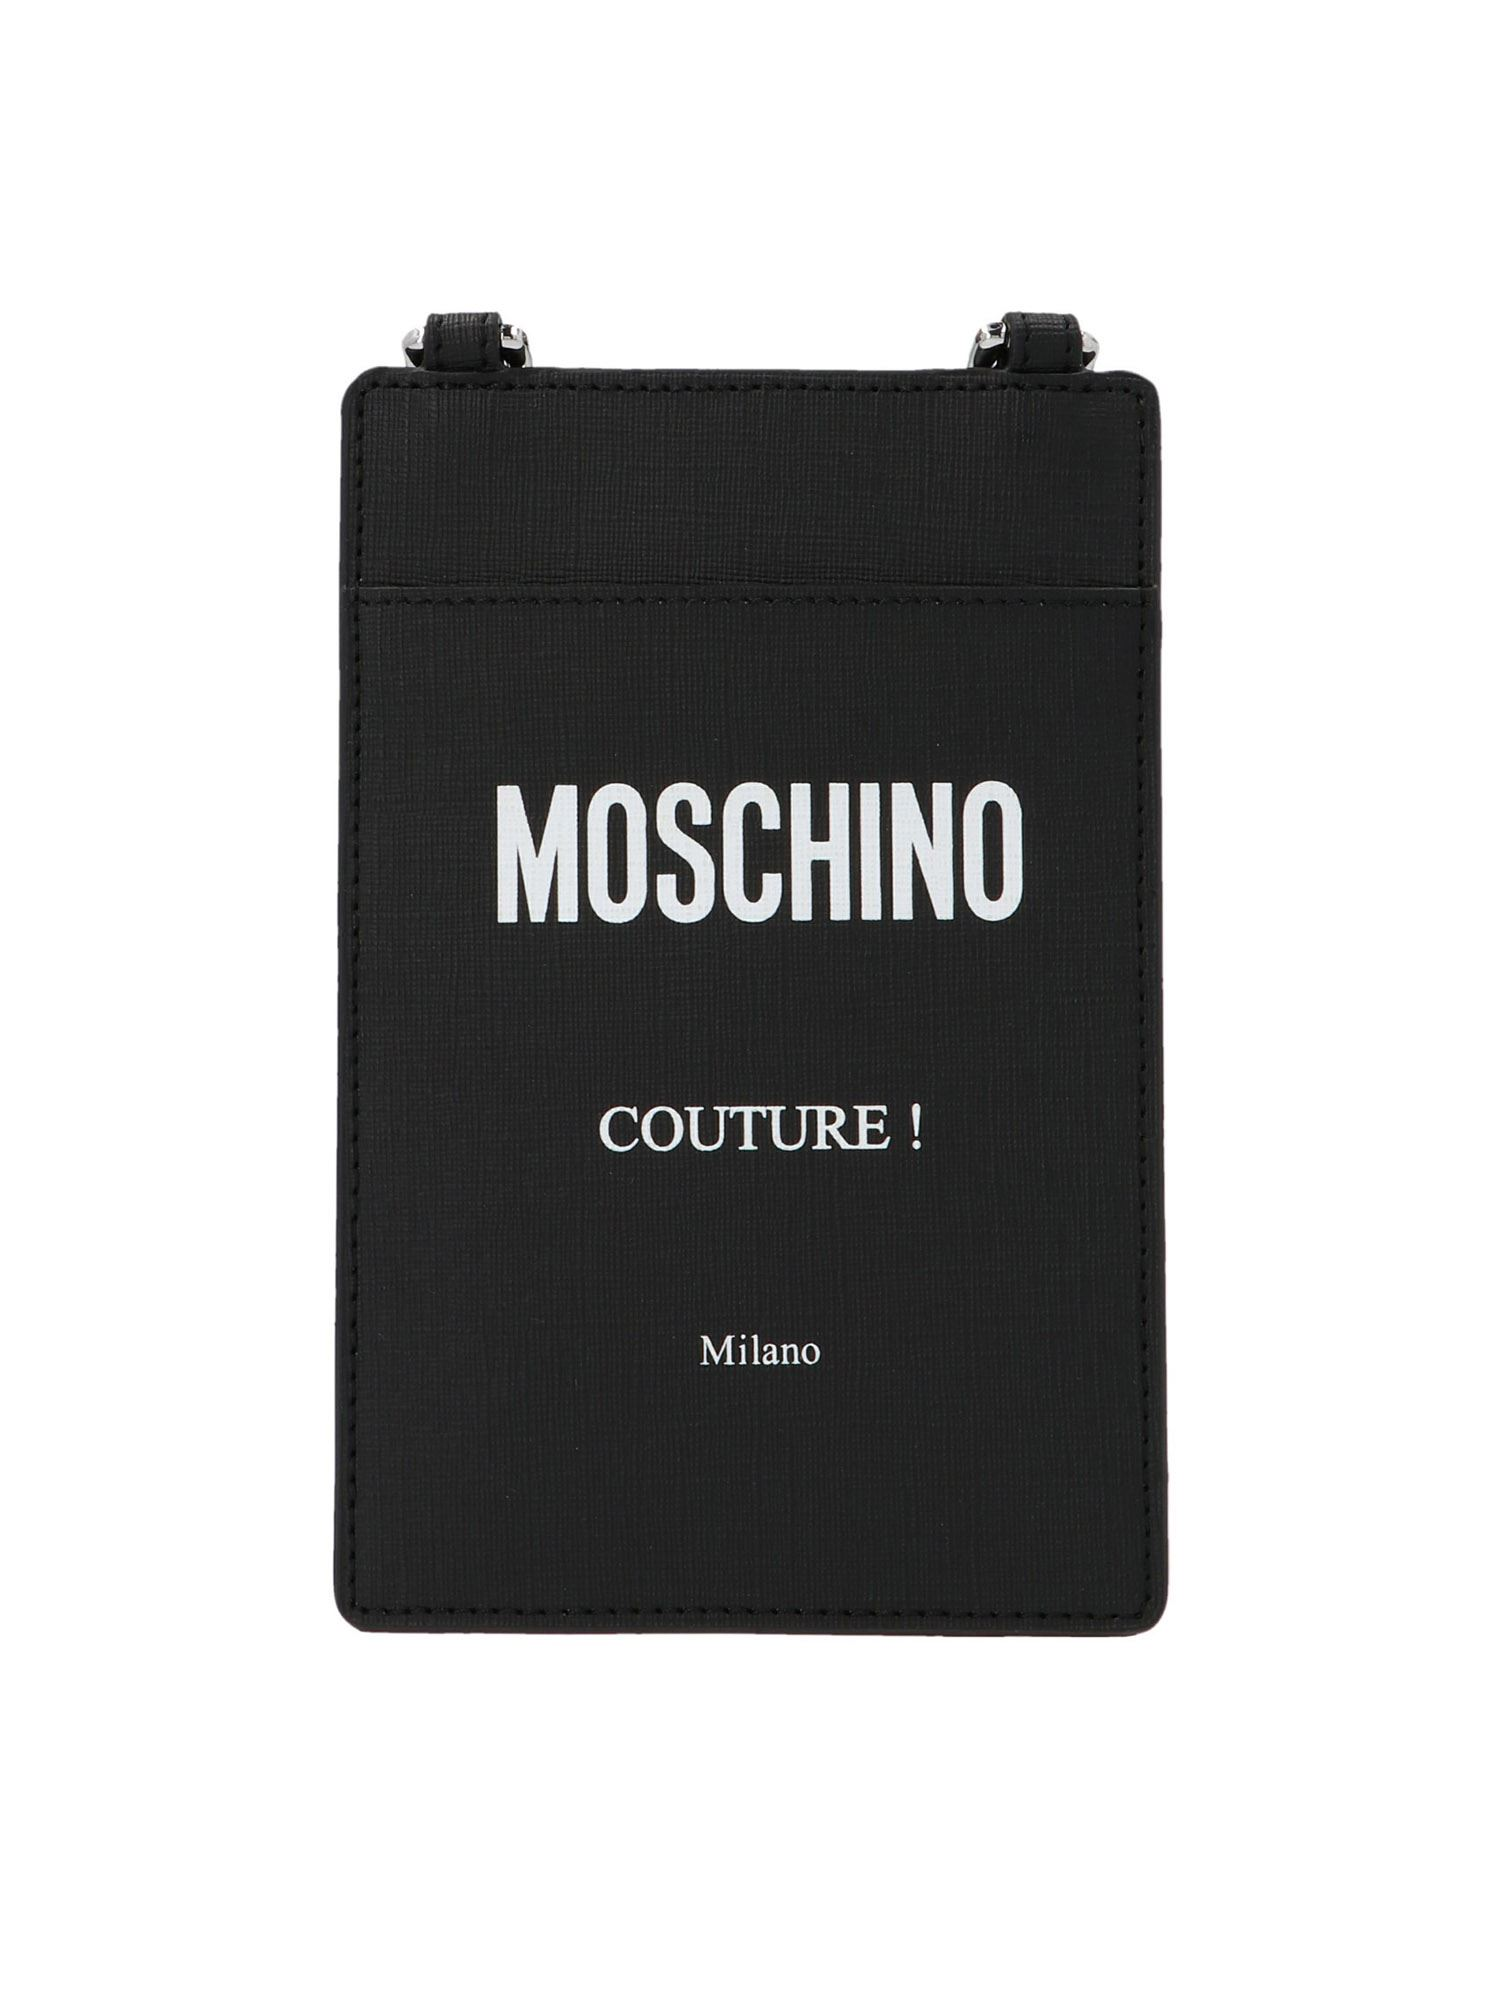 Moschino Cardholders SHOULDER STRAP COUTURE CARD HOLDER IN BLACK